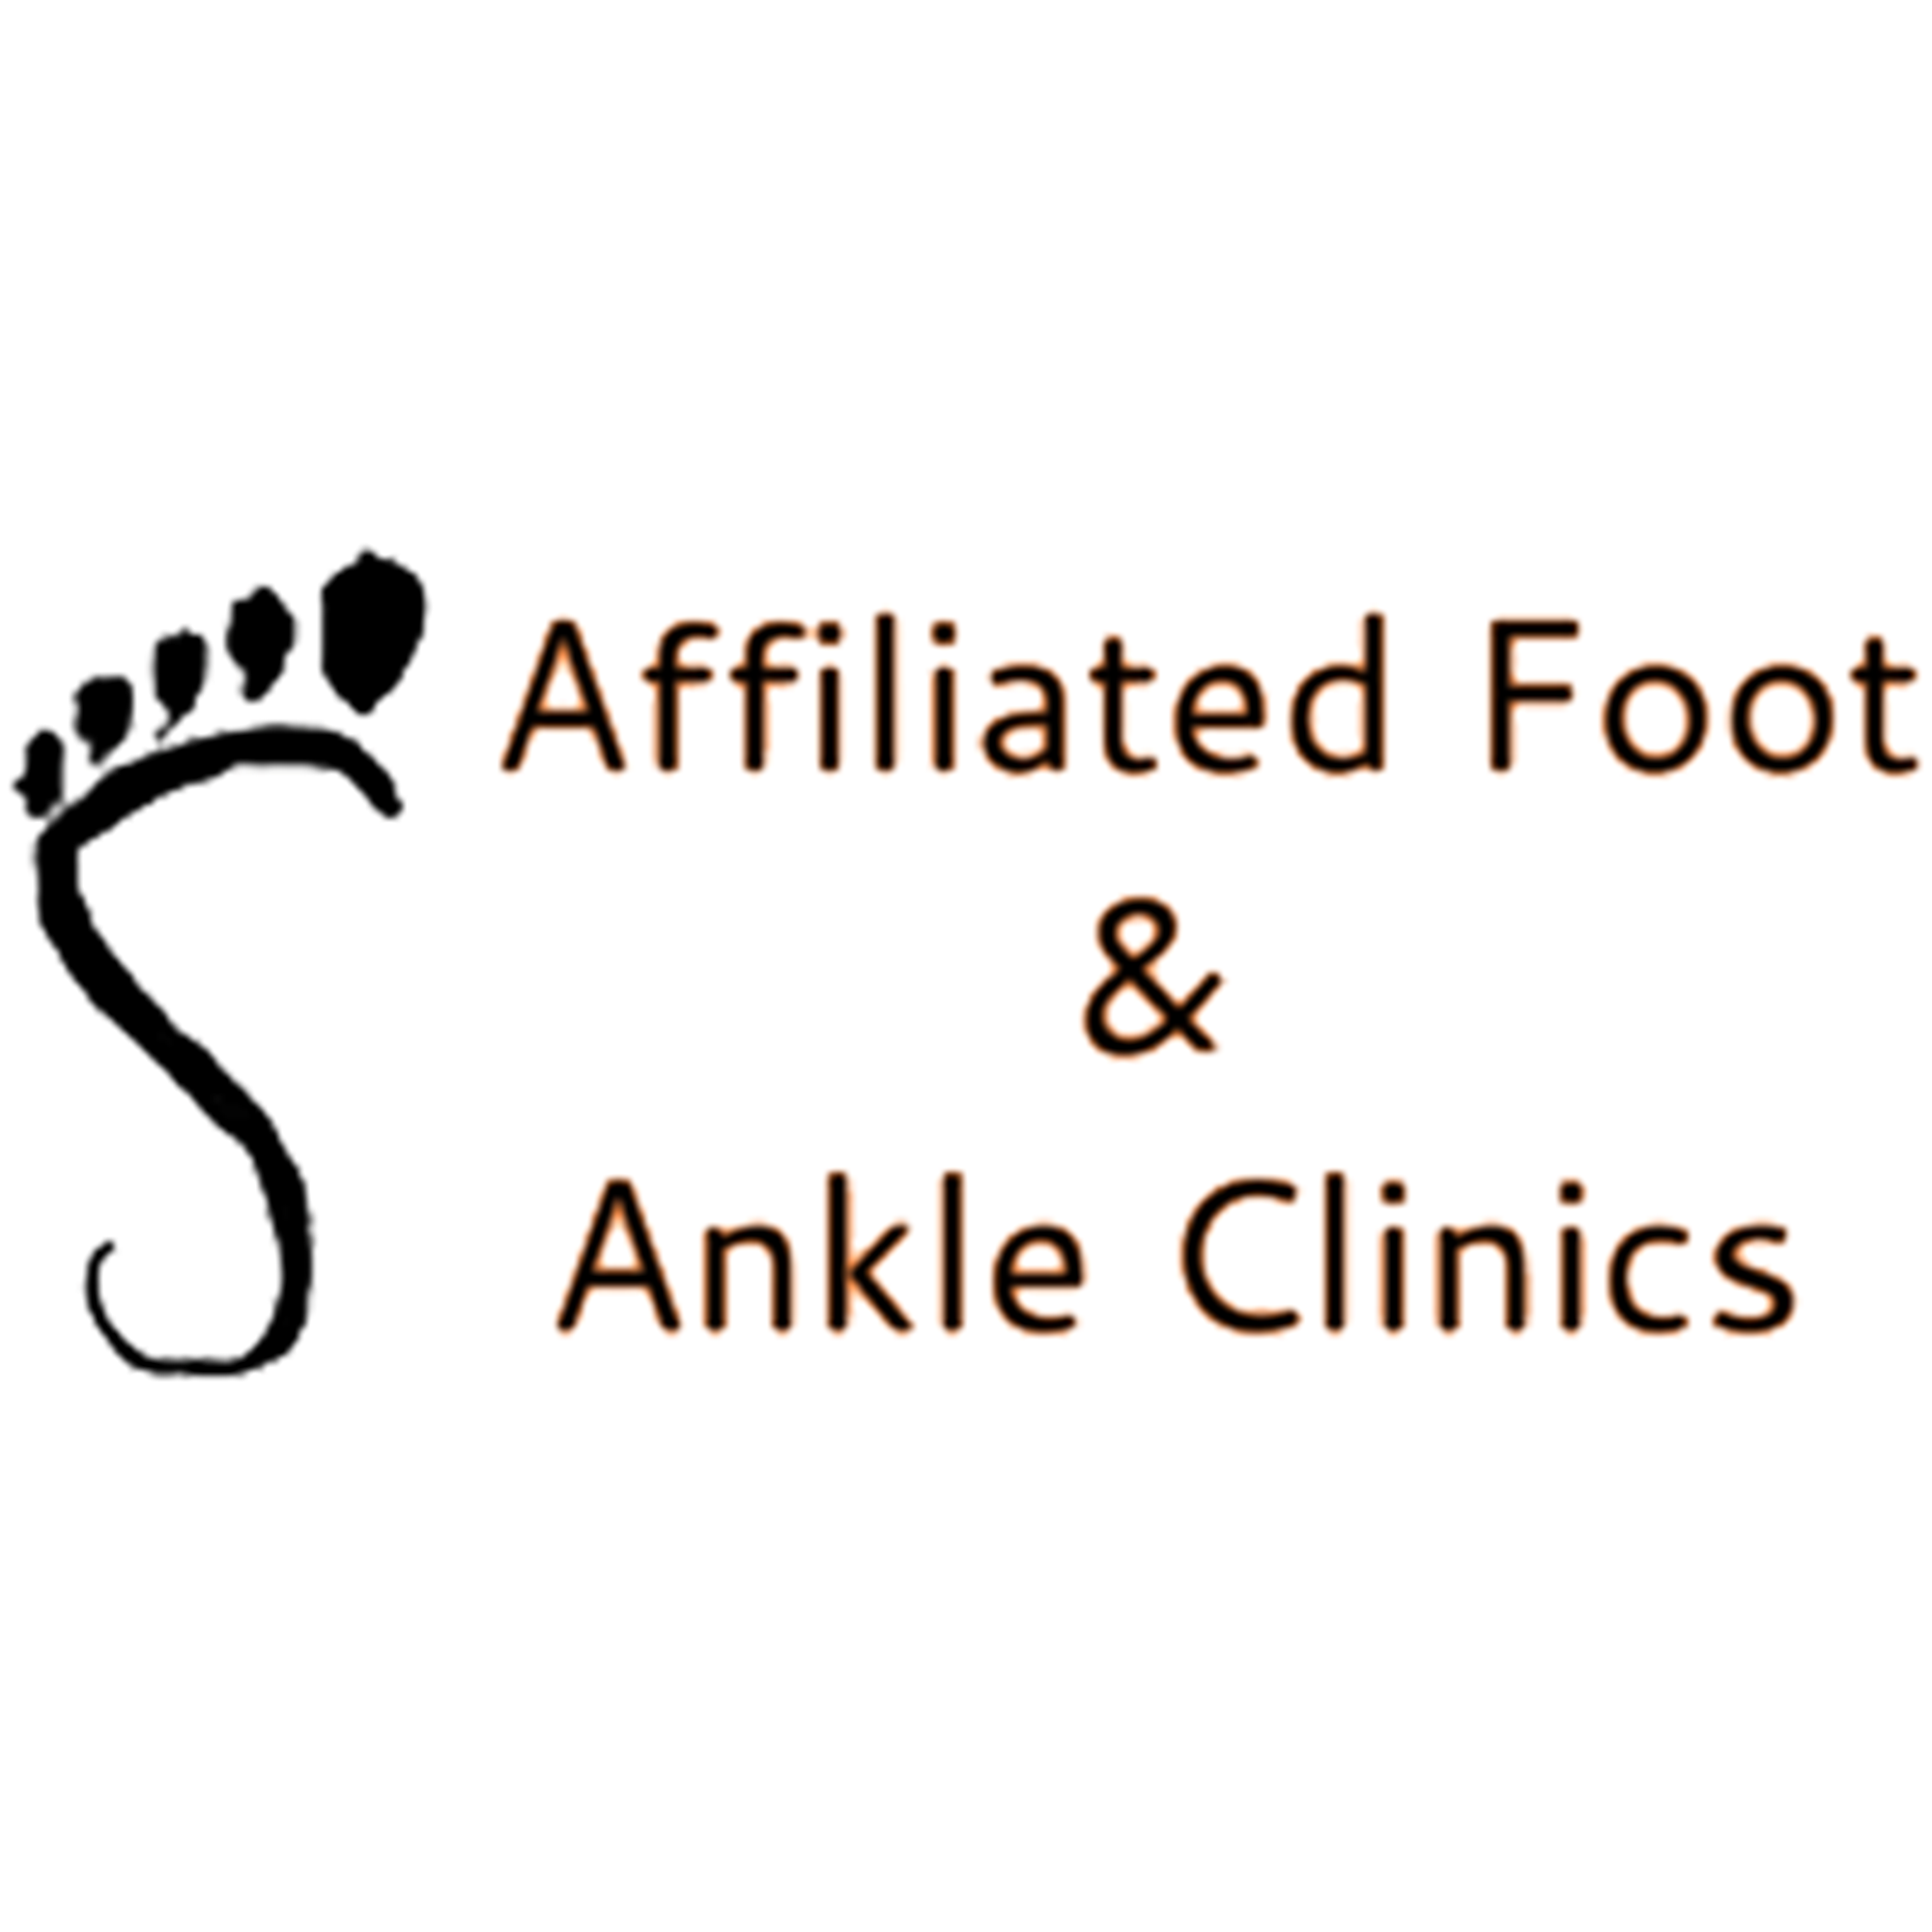 Affiliated Foot Ankle Clinic 5100 N Brookline Ave Ste 375